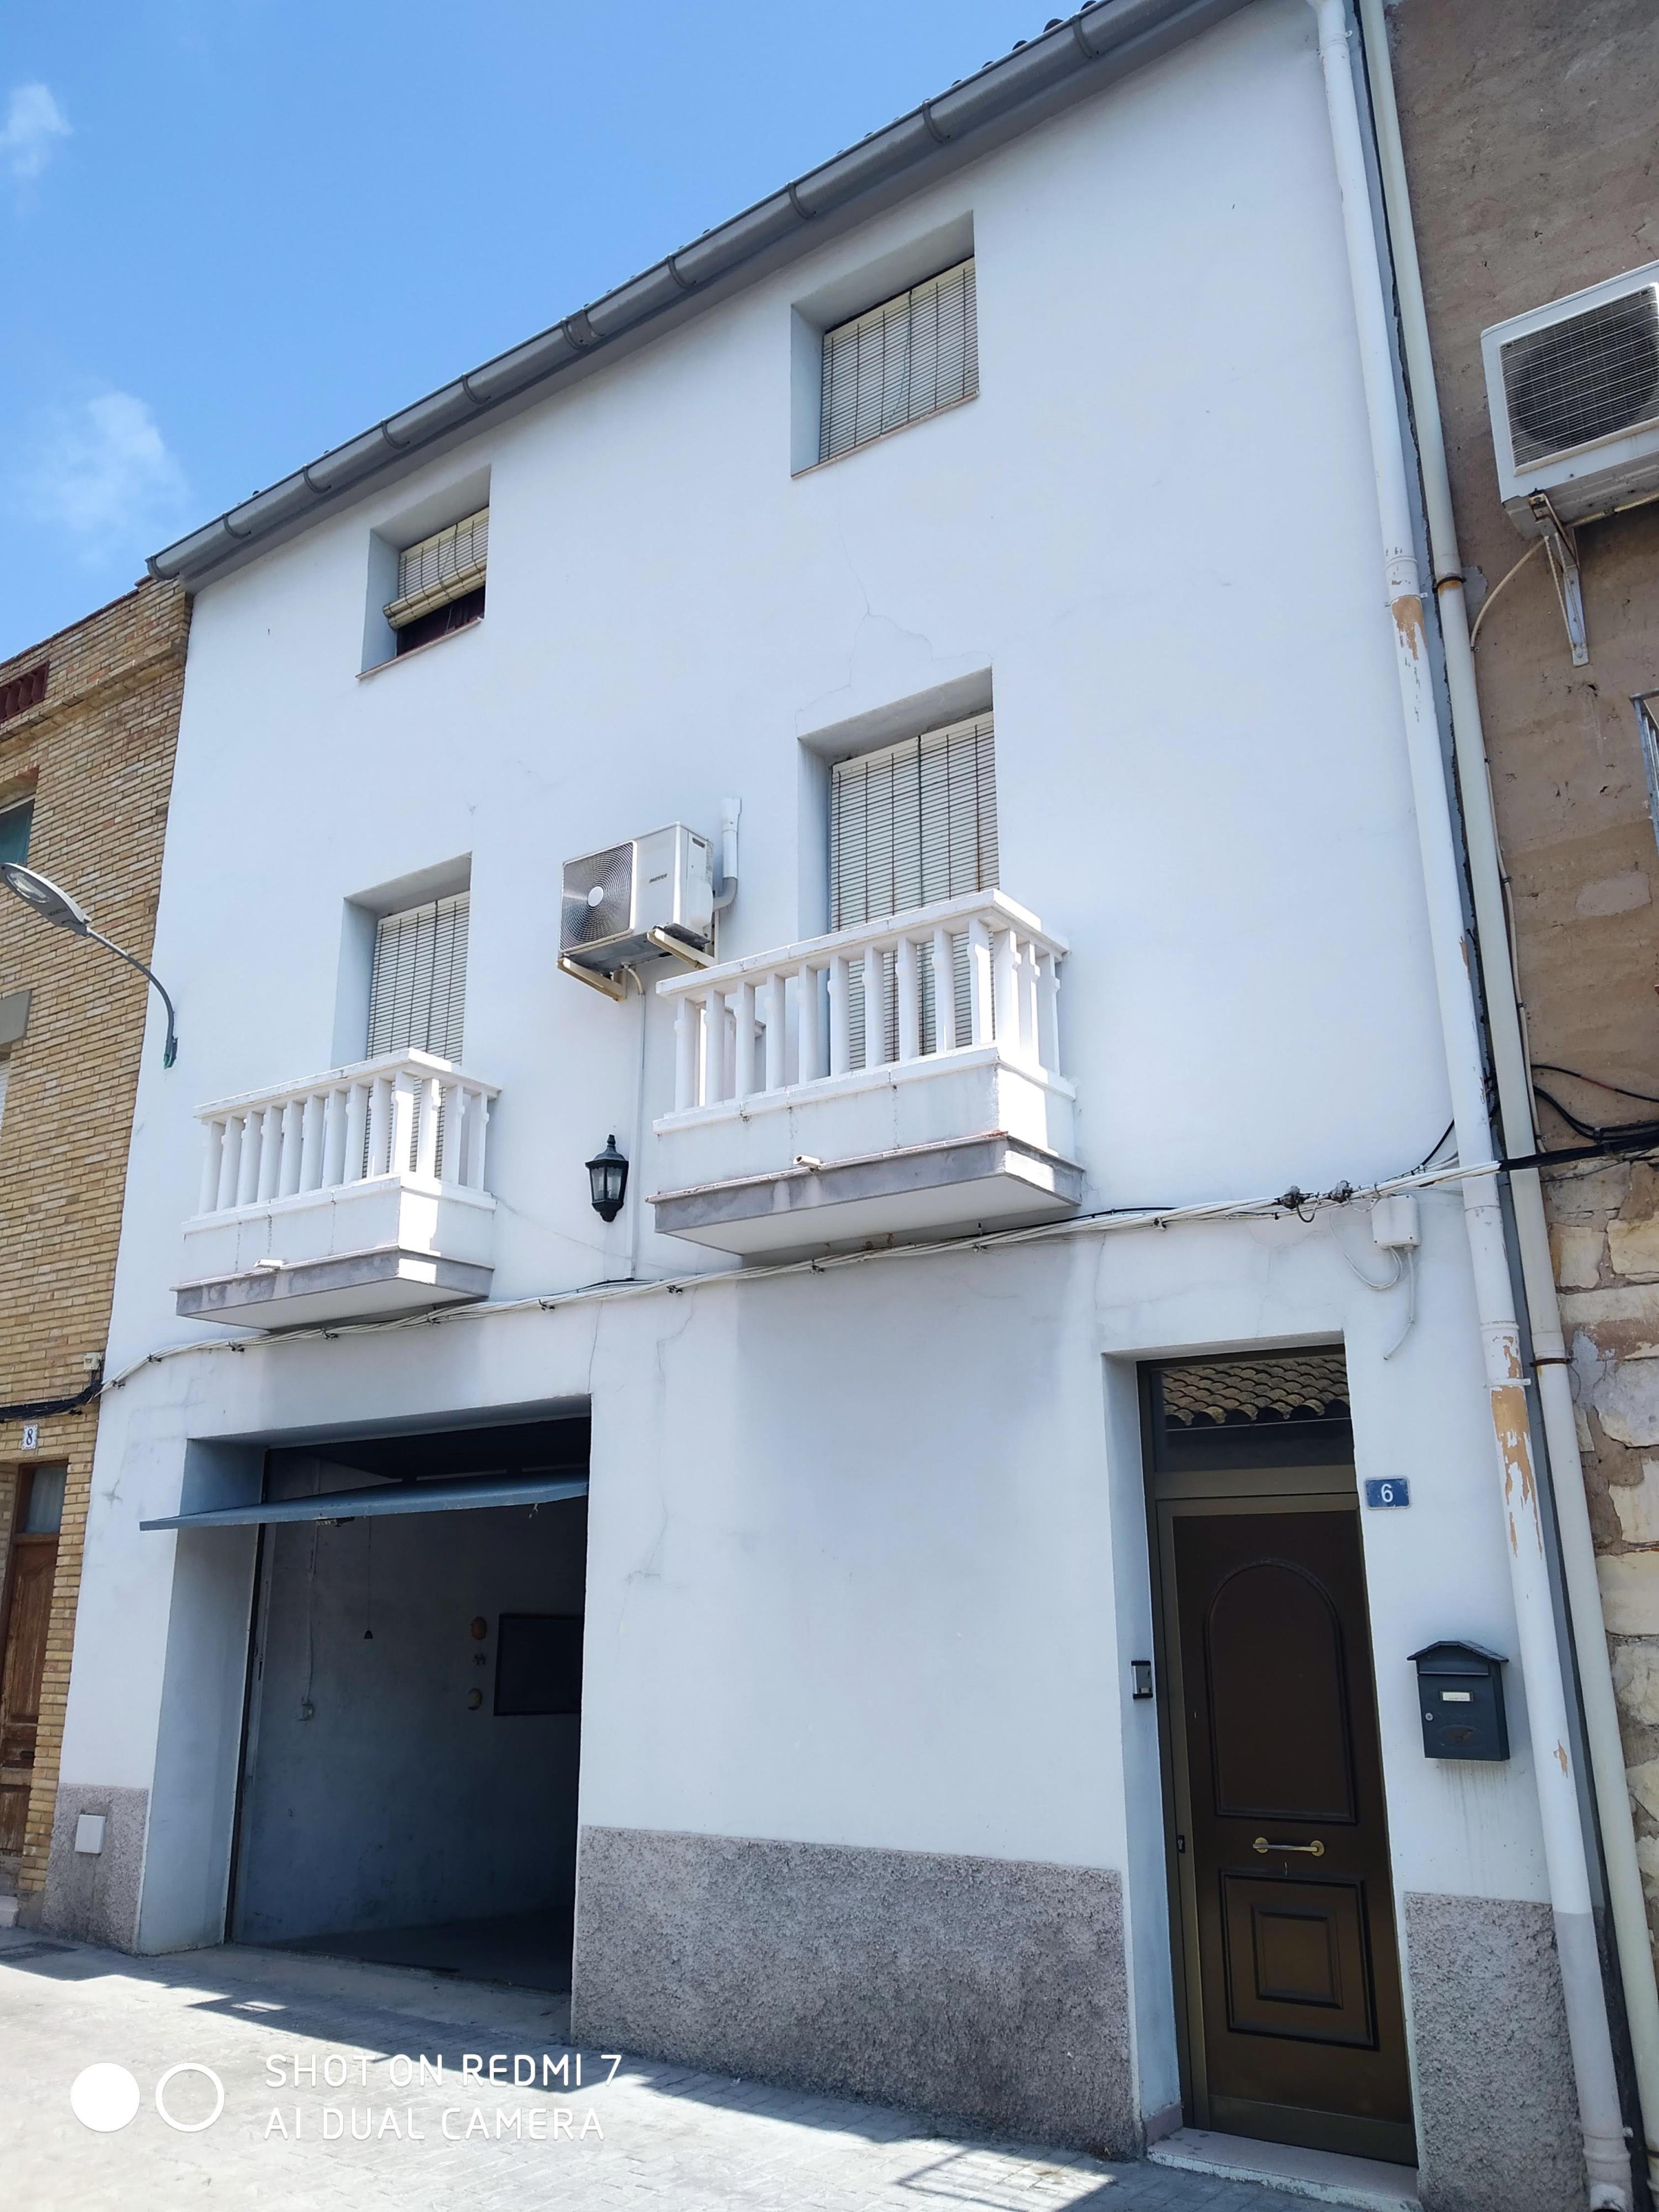 CORBERA D'EBRE, 5 Bedrooms Bedrooms, 2 Rooms Rooms,1 BathroomBathrooms,Casa de Poble,Urbana,CORBERA D'EBRE,1253